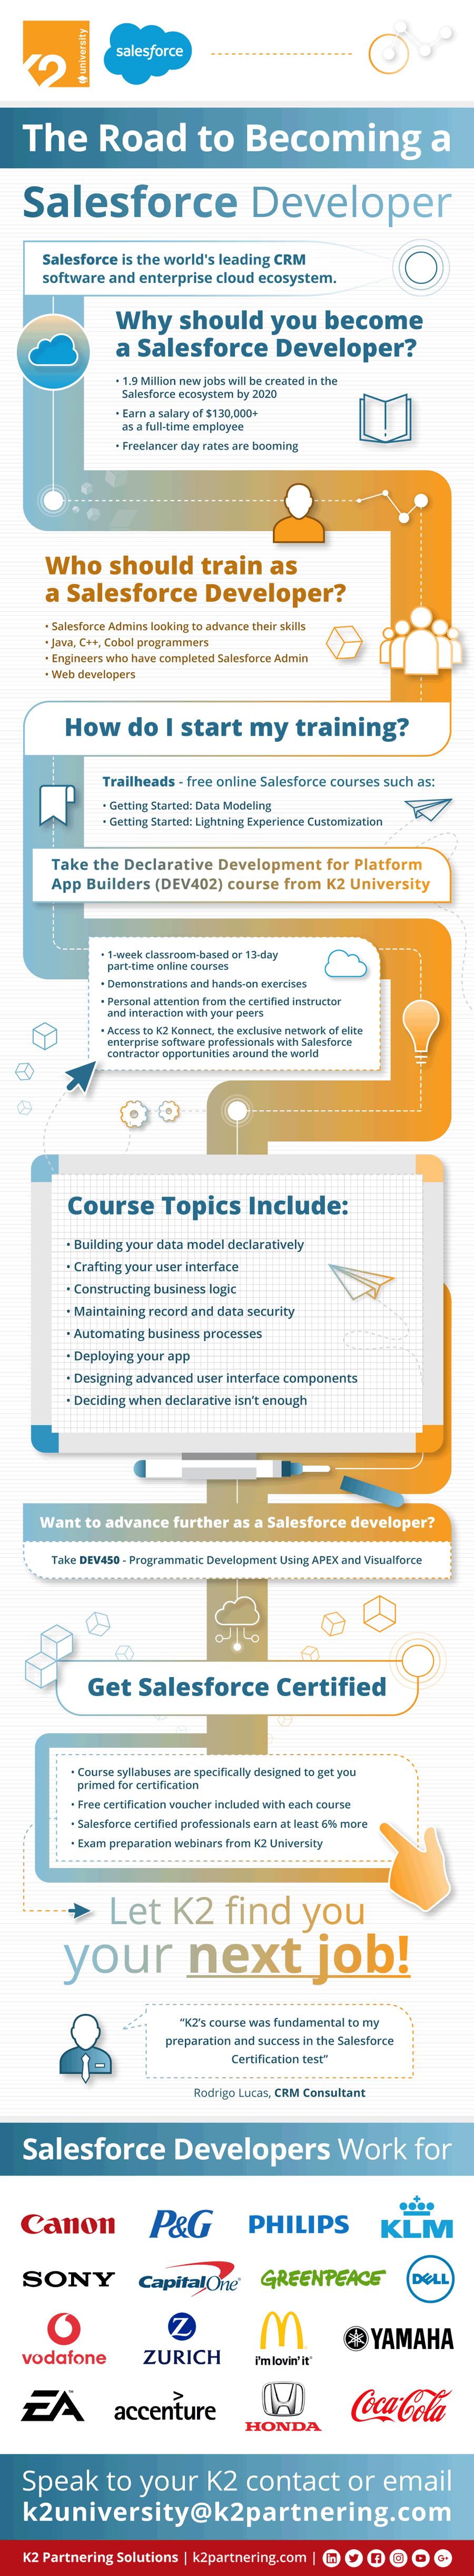 Road to Becoming a Salesforce Admin Infographic